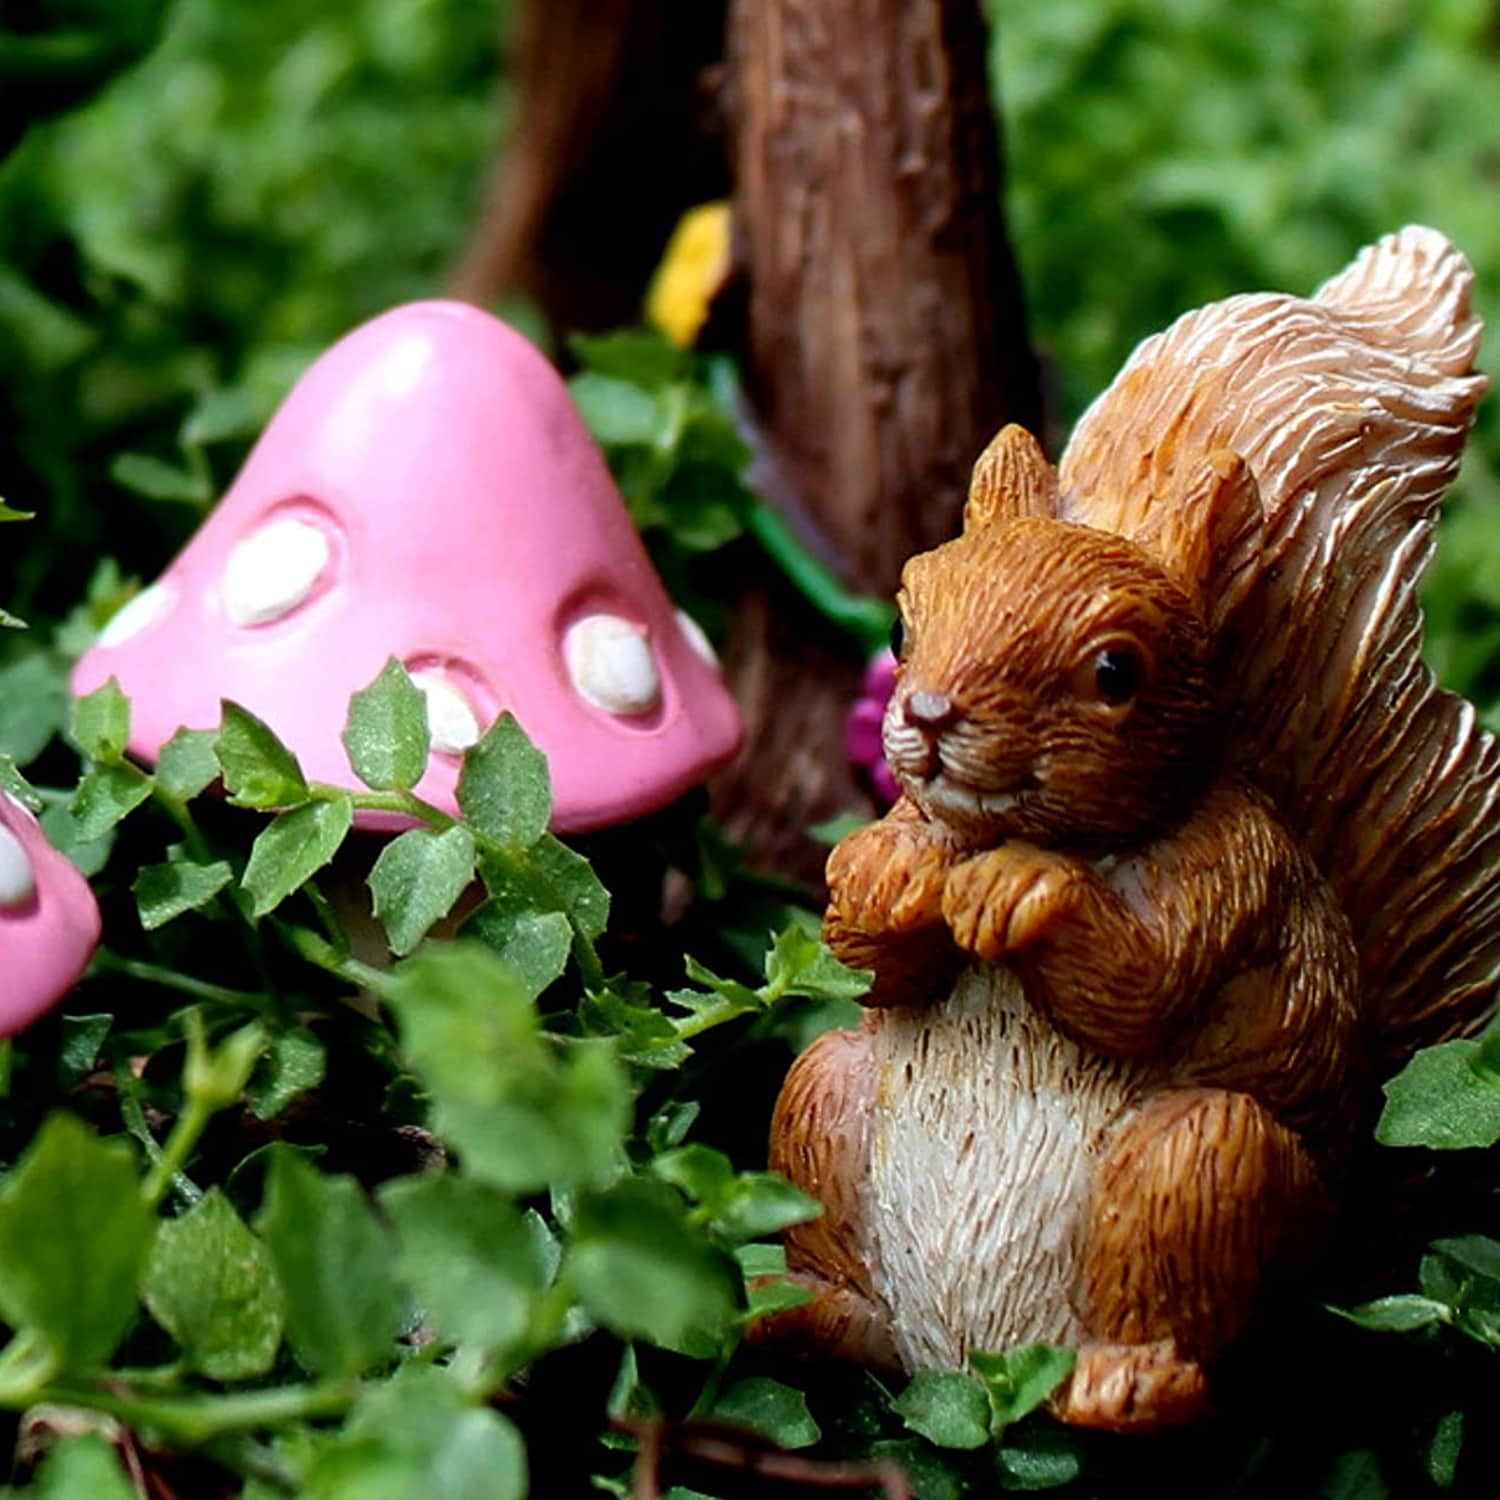 Miniature Fairies And Fairy Swing Set With Squirrel And Mushrooms